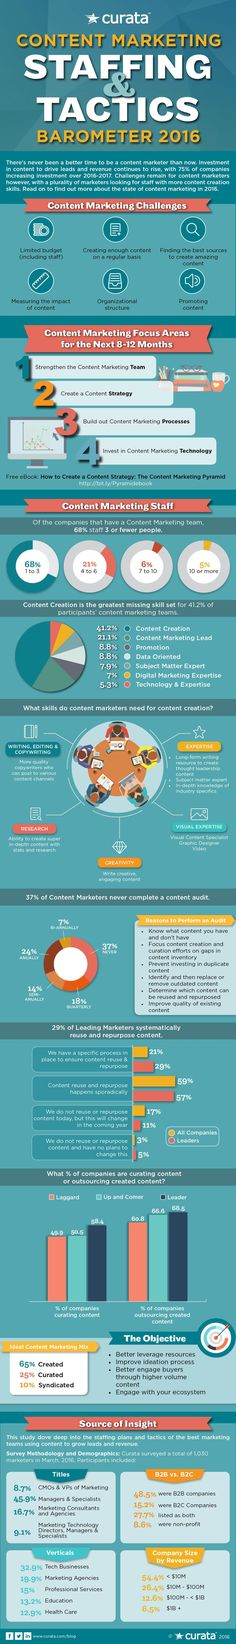 Content Marketing in 2016: State of the Sector [Infographic]